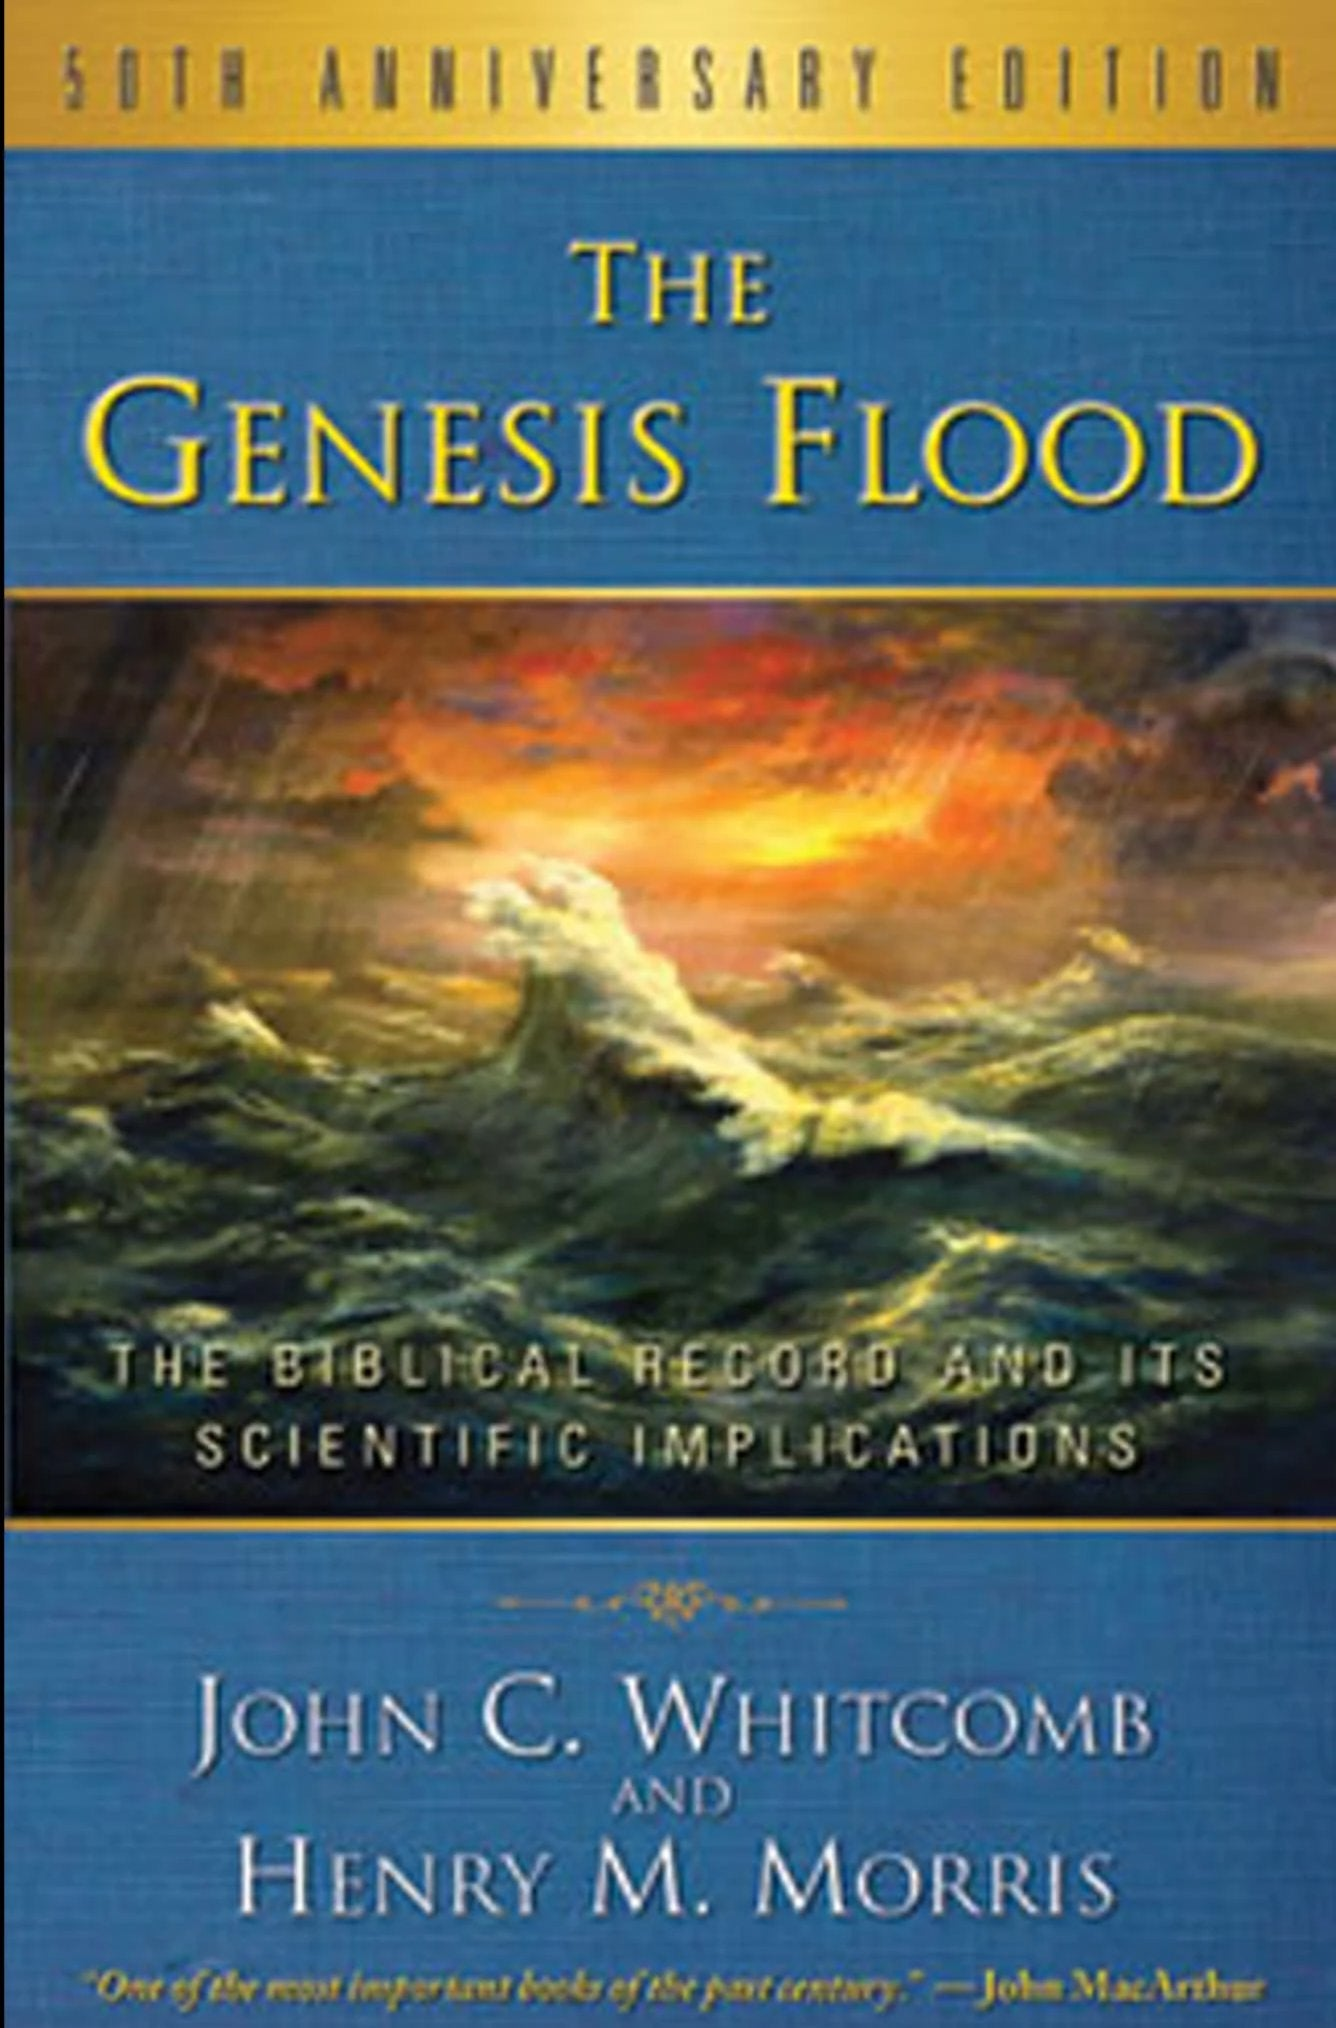 Genesis Flood : 50th Anniversary Edition